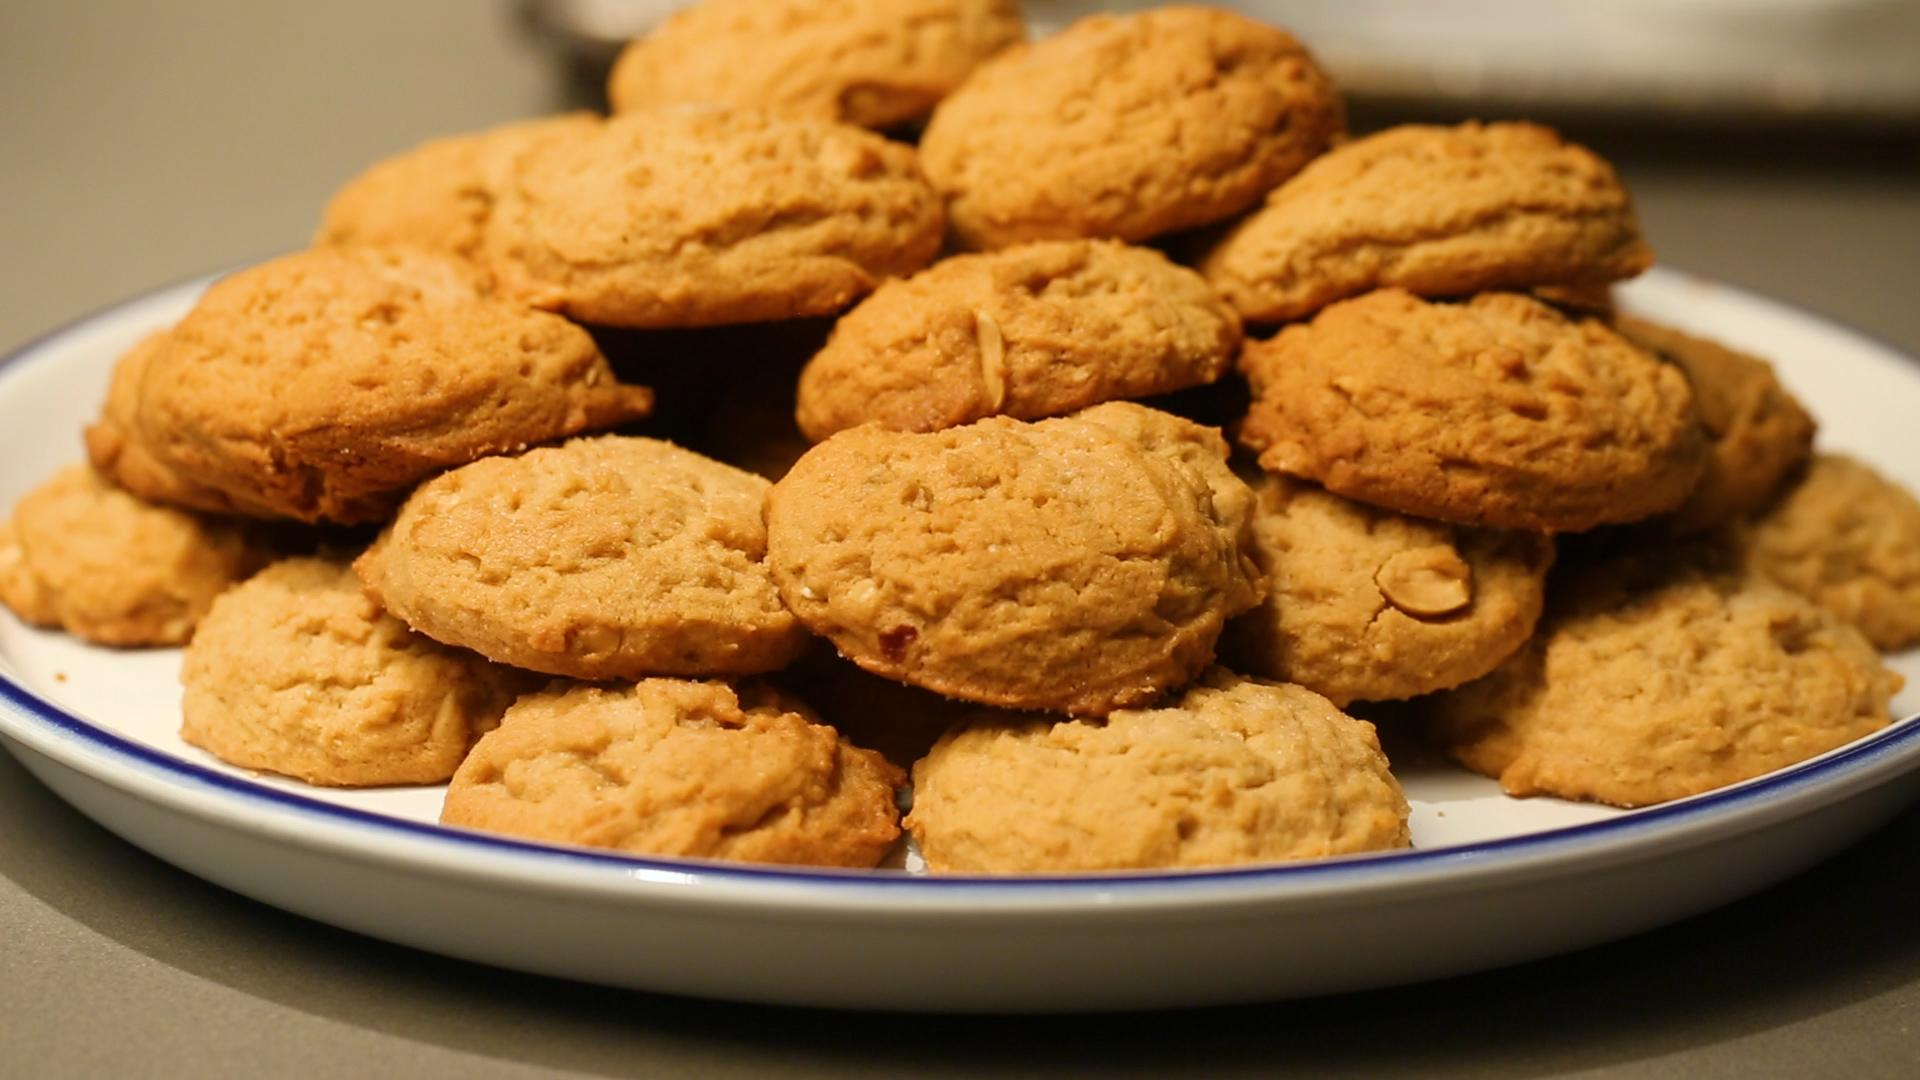 How To Make The Most Peanut Butter-y Cookies For National PB Day